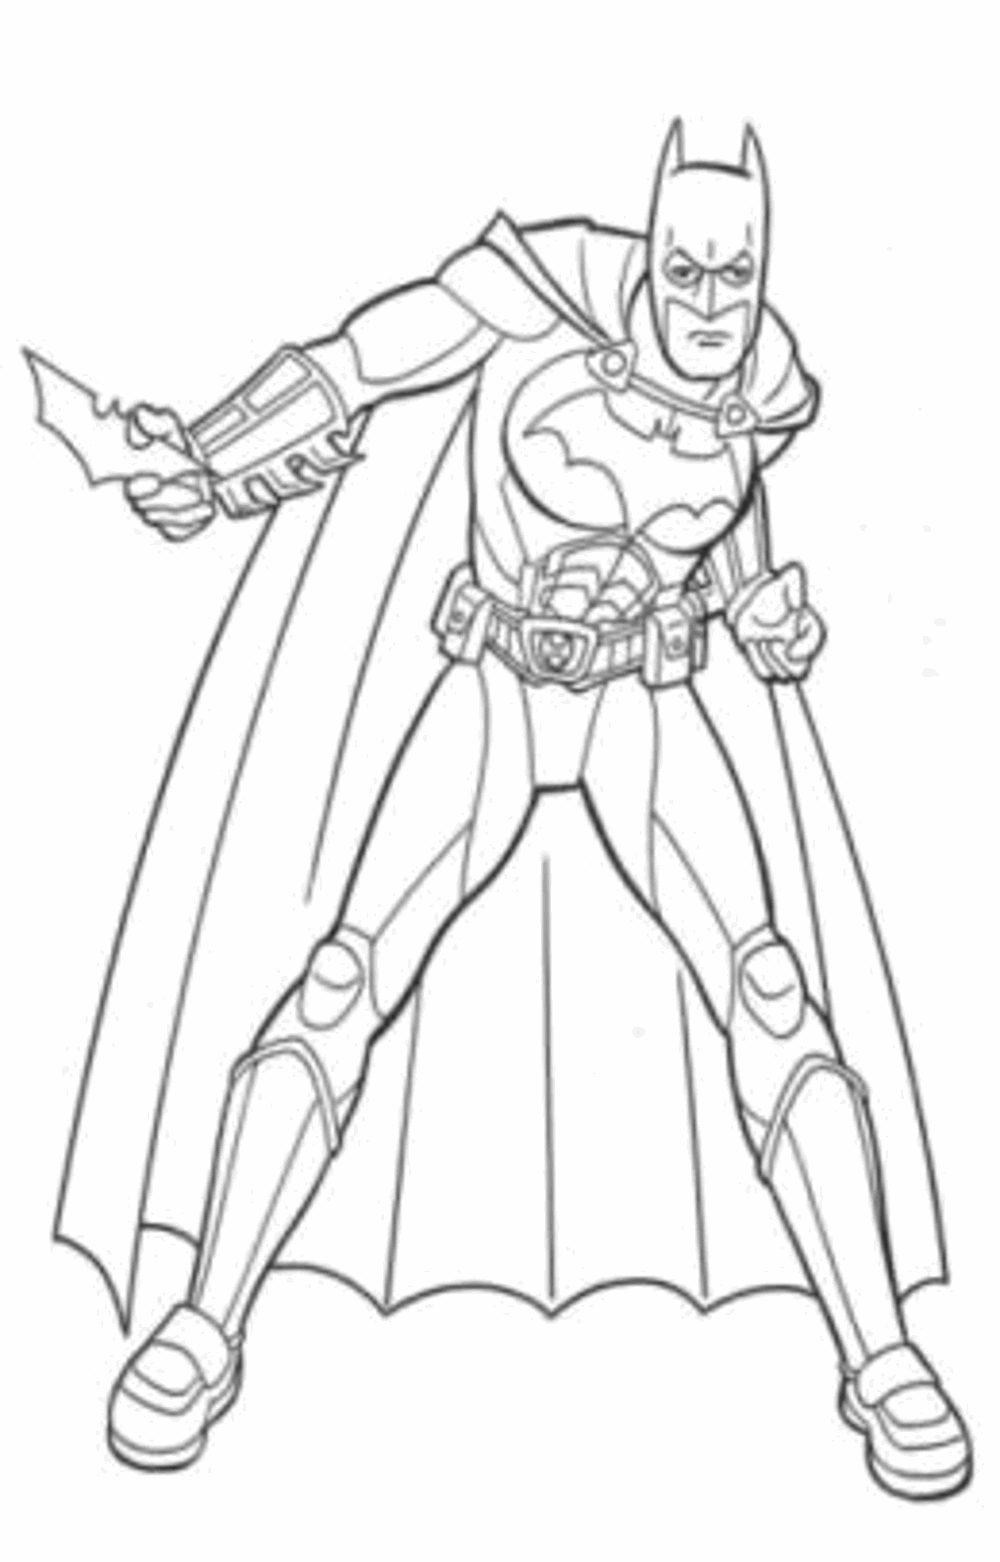 Batman colouring games | Gambar